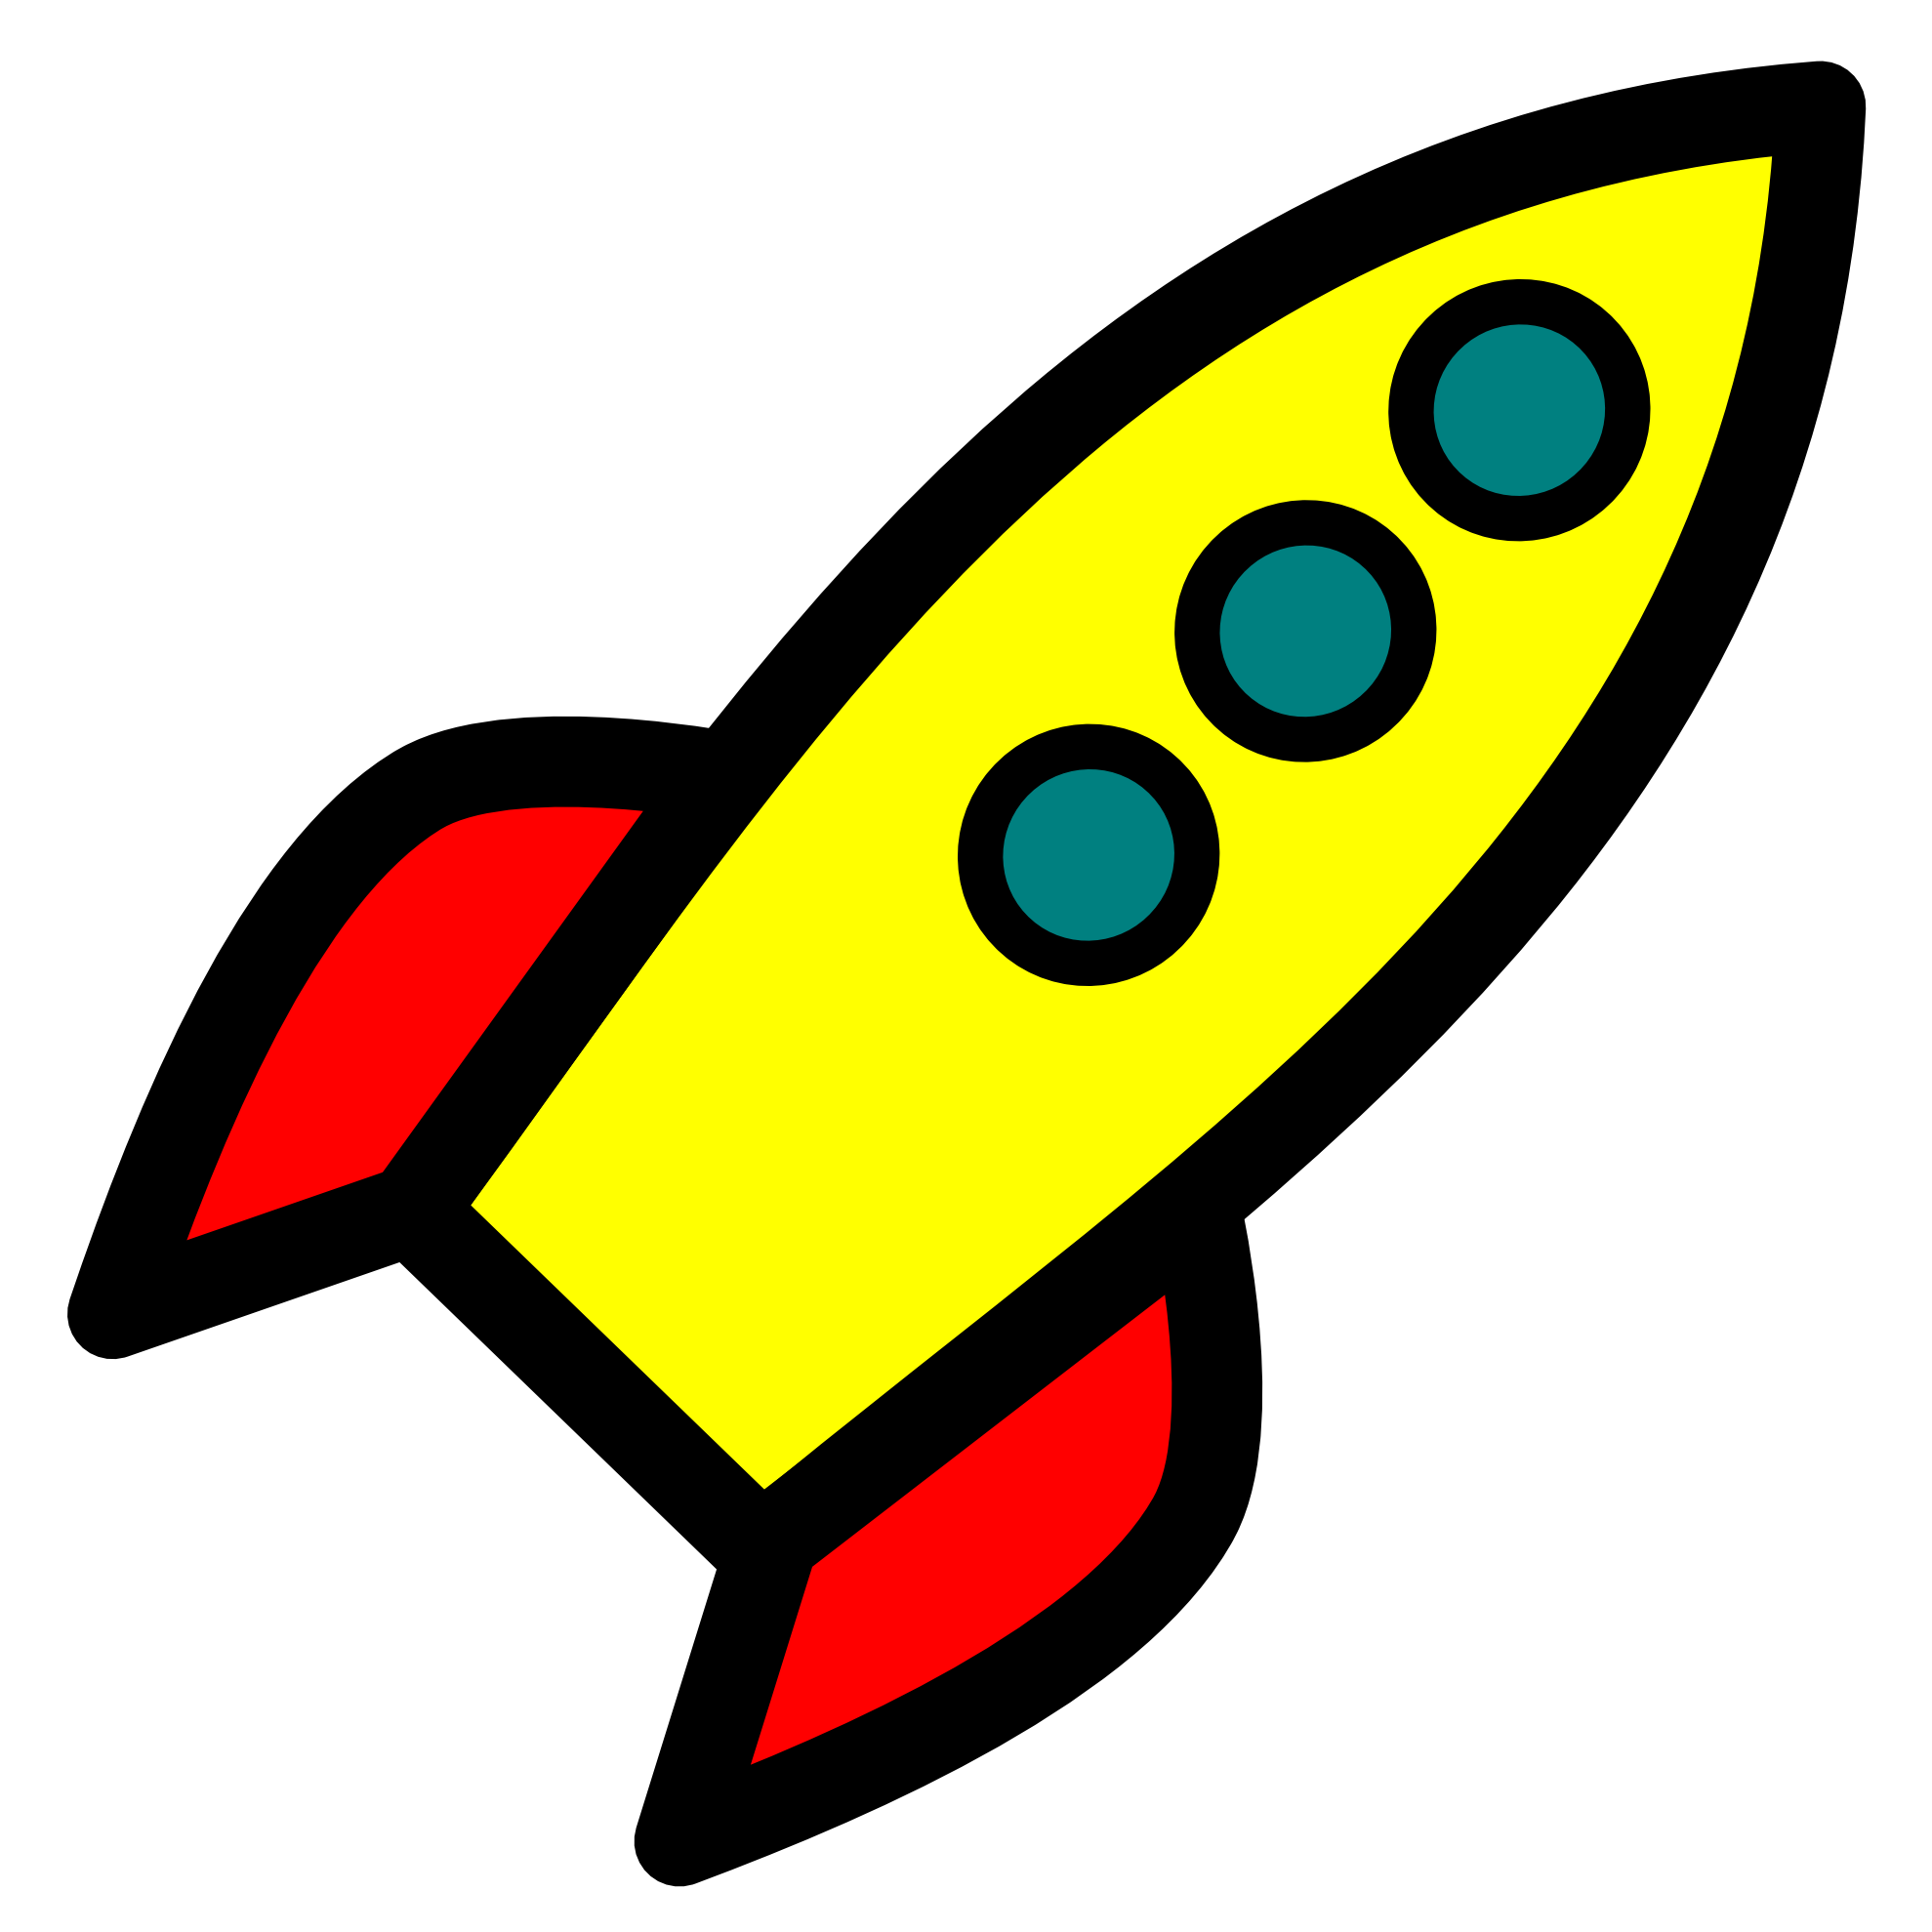 collection of space. Spaceship clipart guardians the galaxy